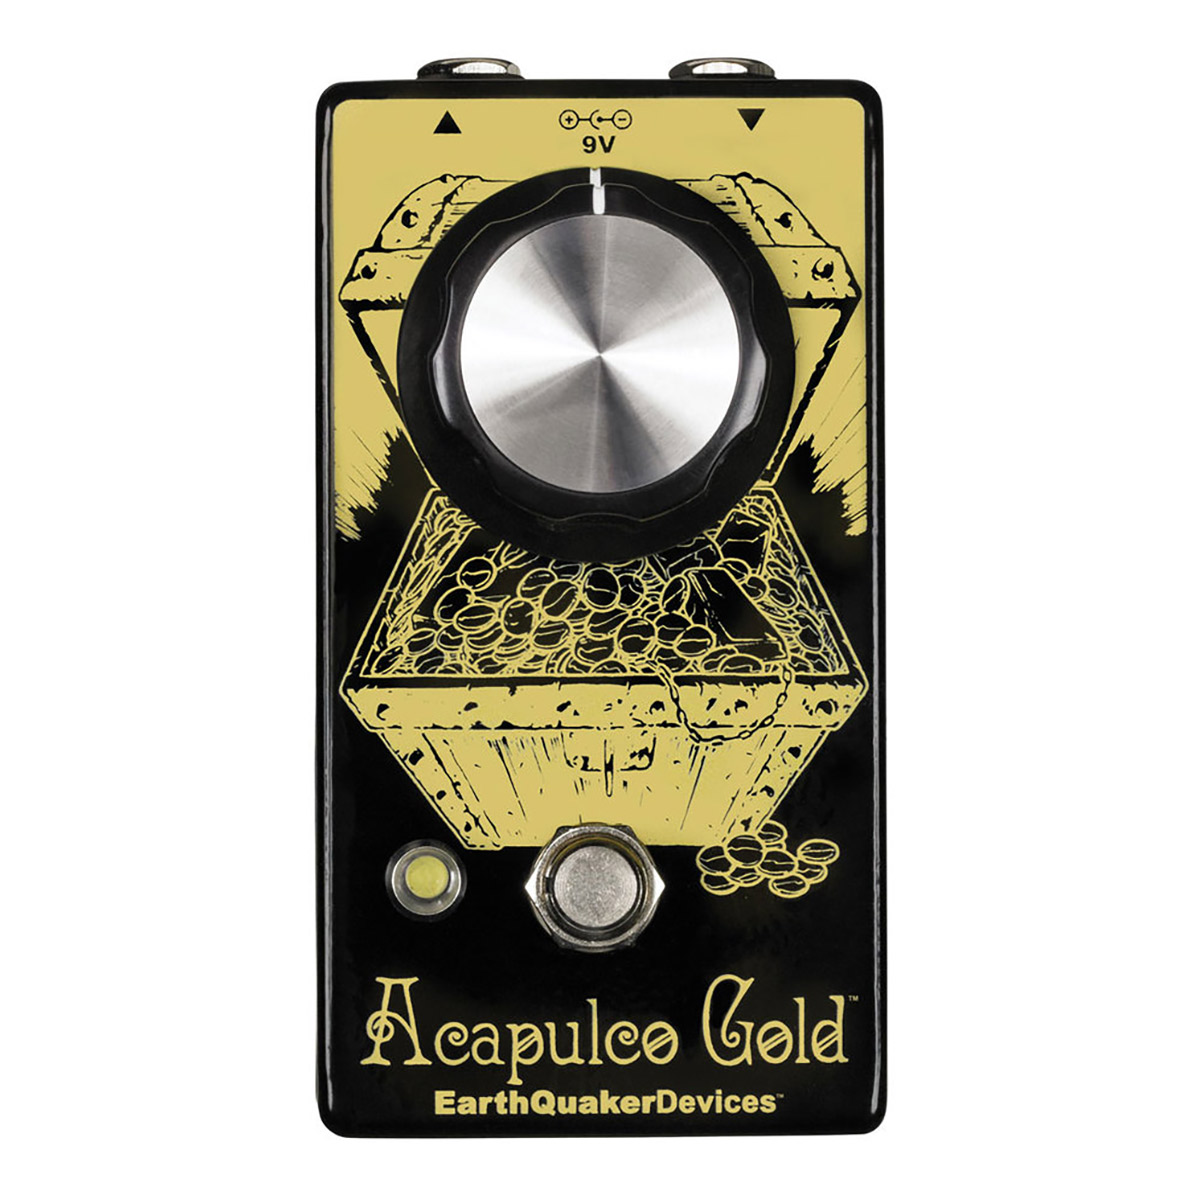 EarthQuaker Devices Acapulco Gold コンパクトエフェクター パワーアンプディストーション 【アースクエイカーデバイス】